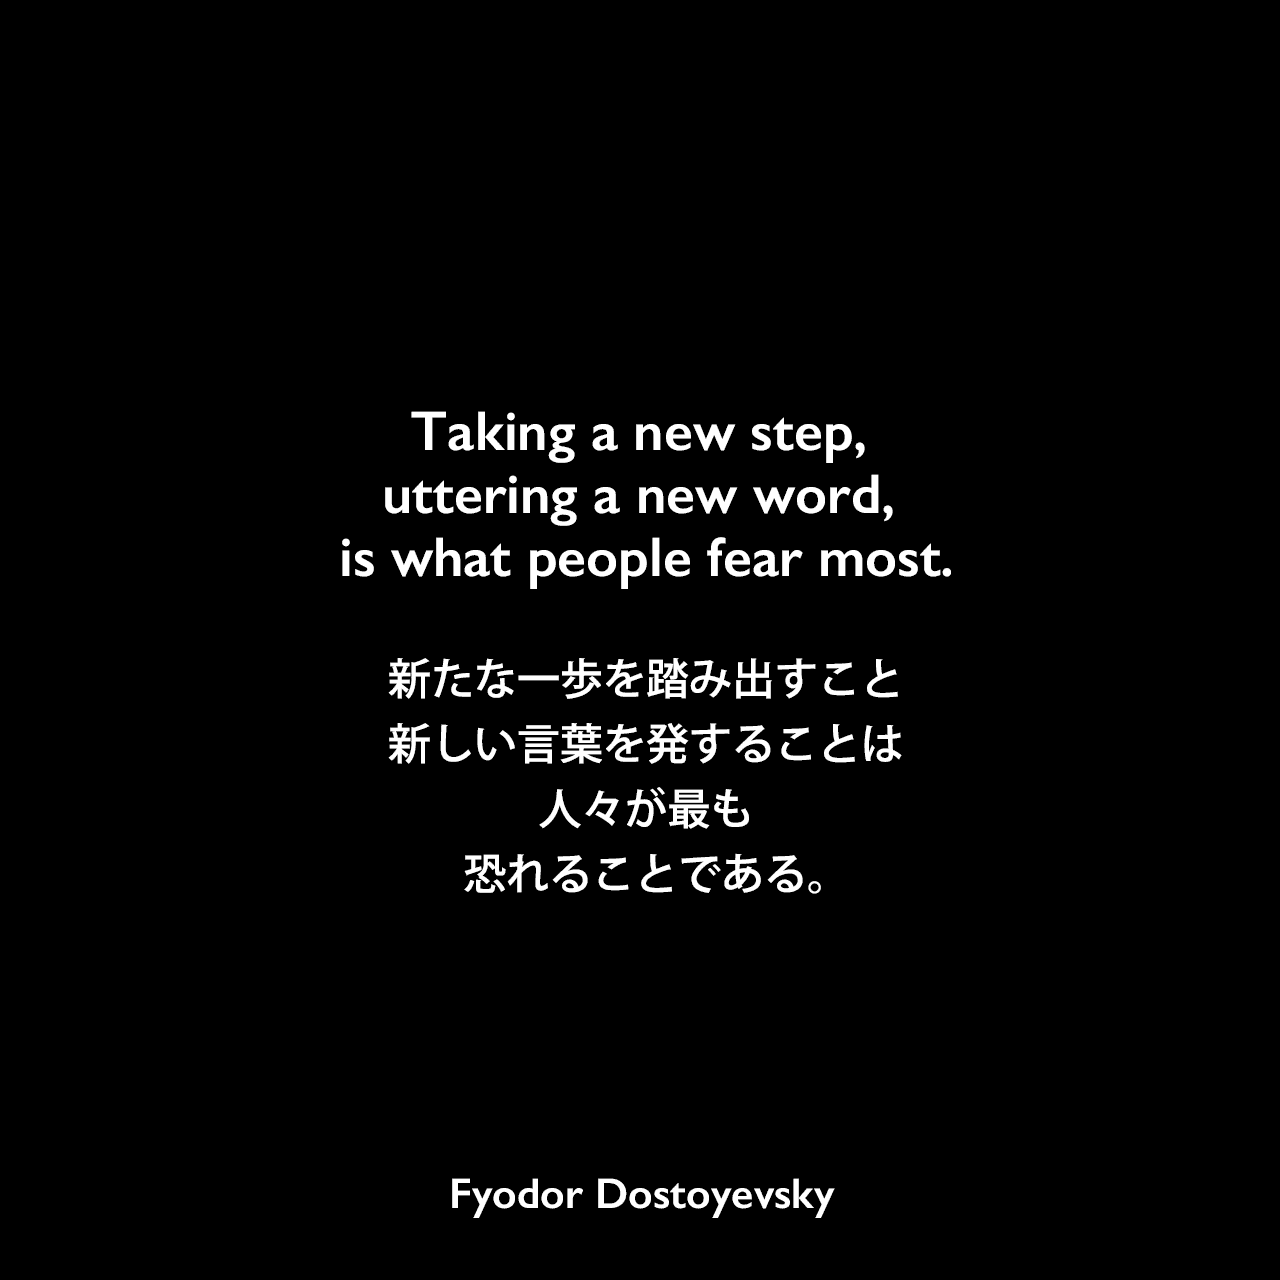 Taking a new step, uttering a new word, is what people fear most.新たな一歩を踏み出すこと、新しい言葉を発することは、人々が最も恐れることである。- ドストエフキーの小説「罪と罰」よりFyodor Dostoyevsky